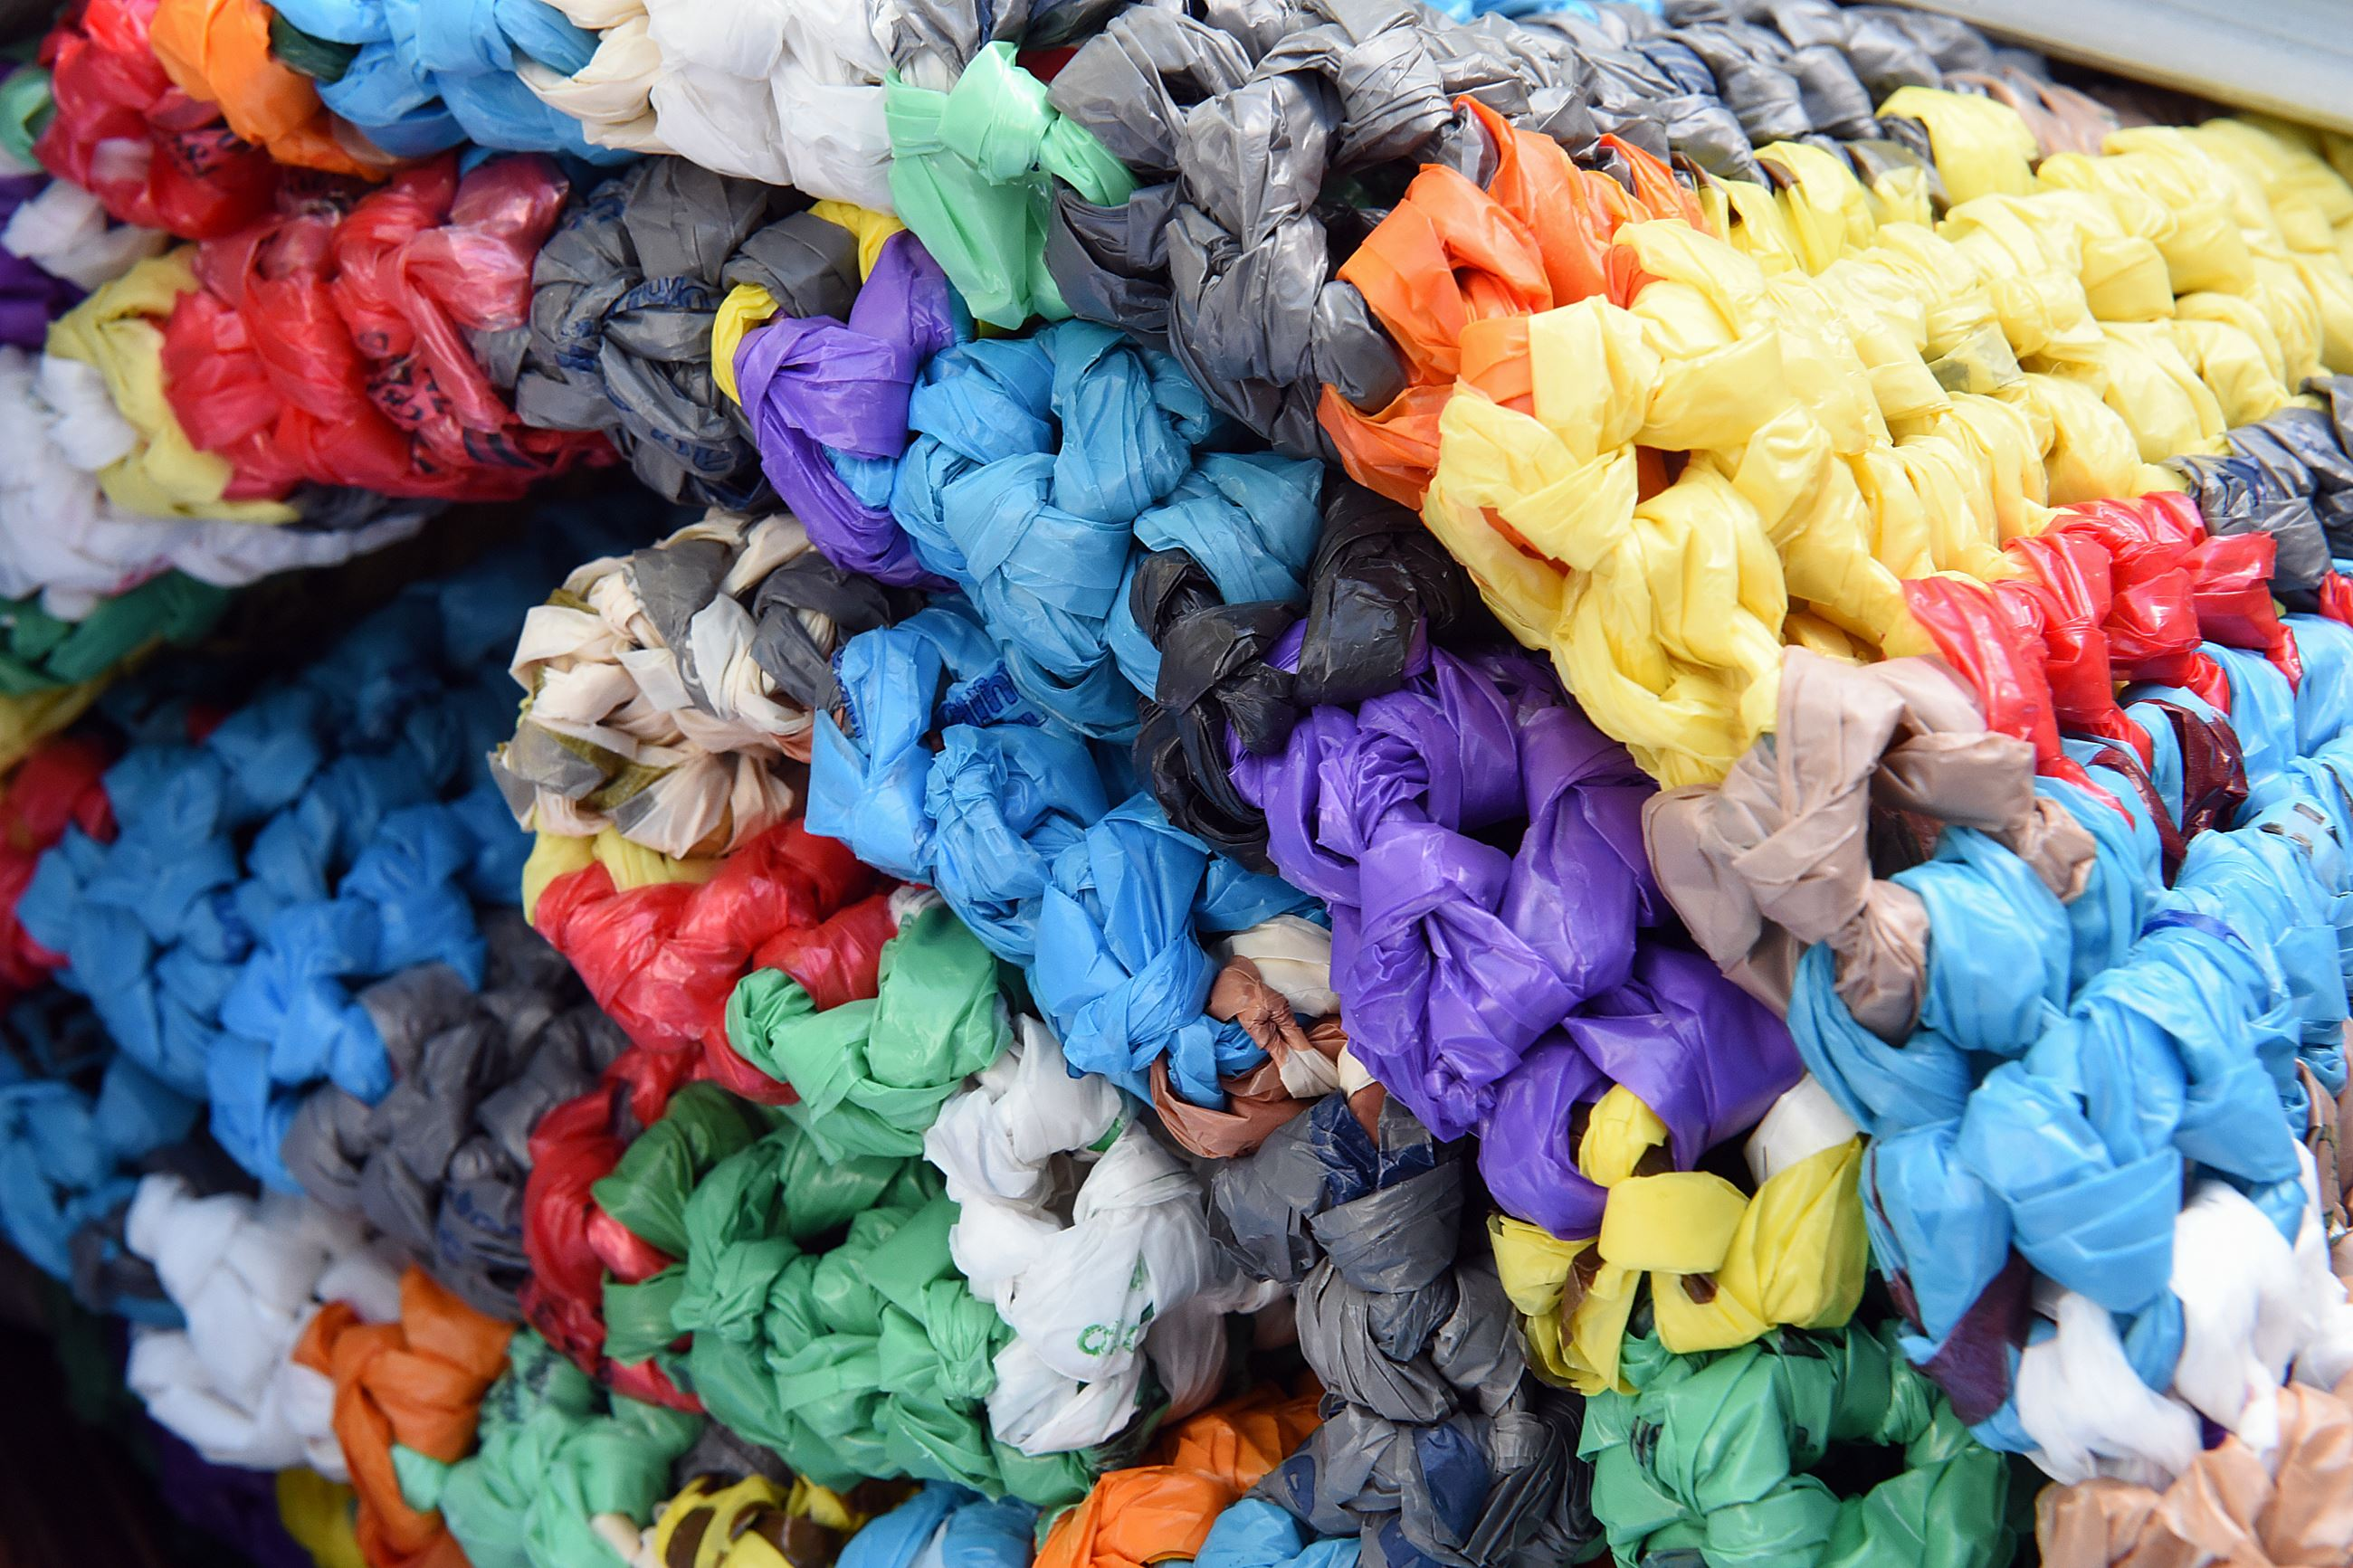 Crocheting Mats From Plastic Bags : ... crochet strips from plastic newspaper and shopping bags into plastic